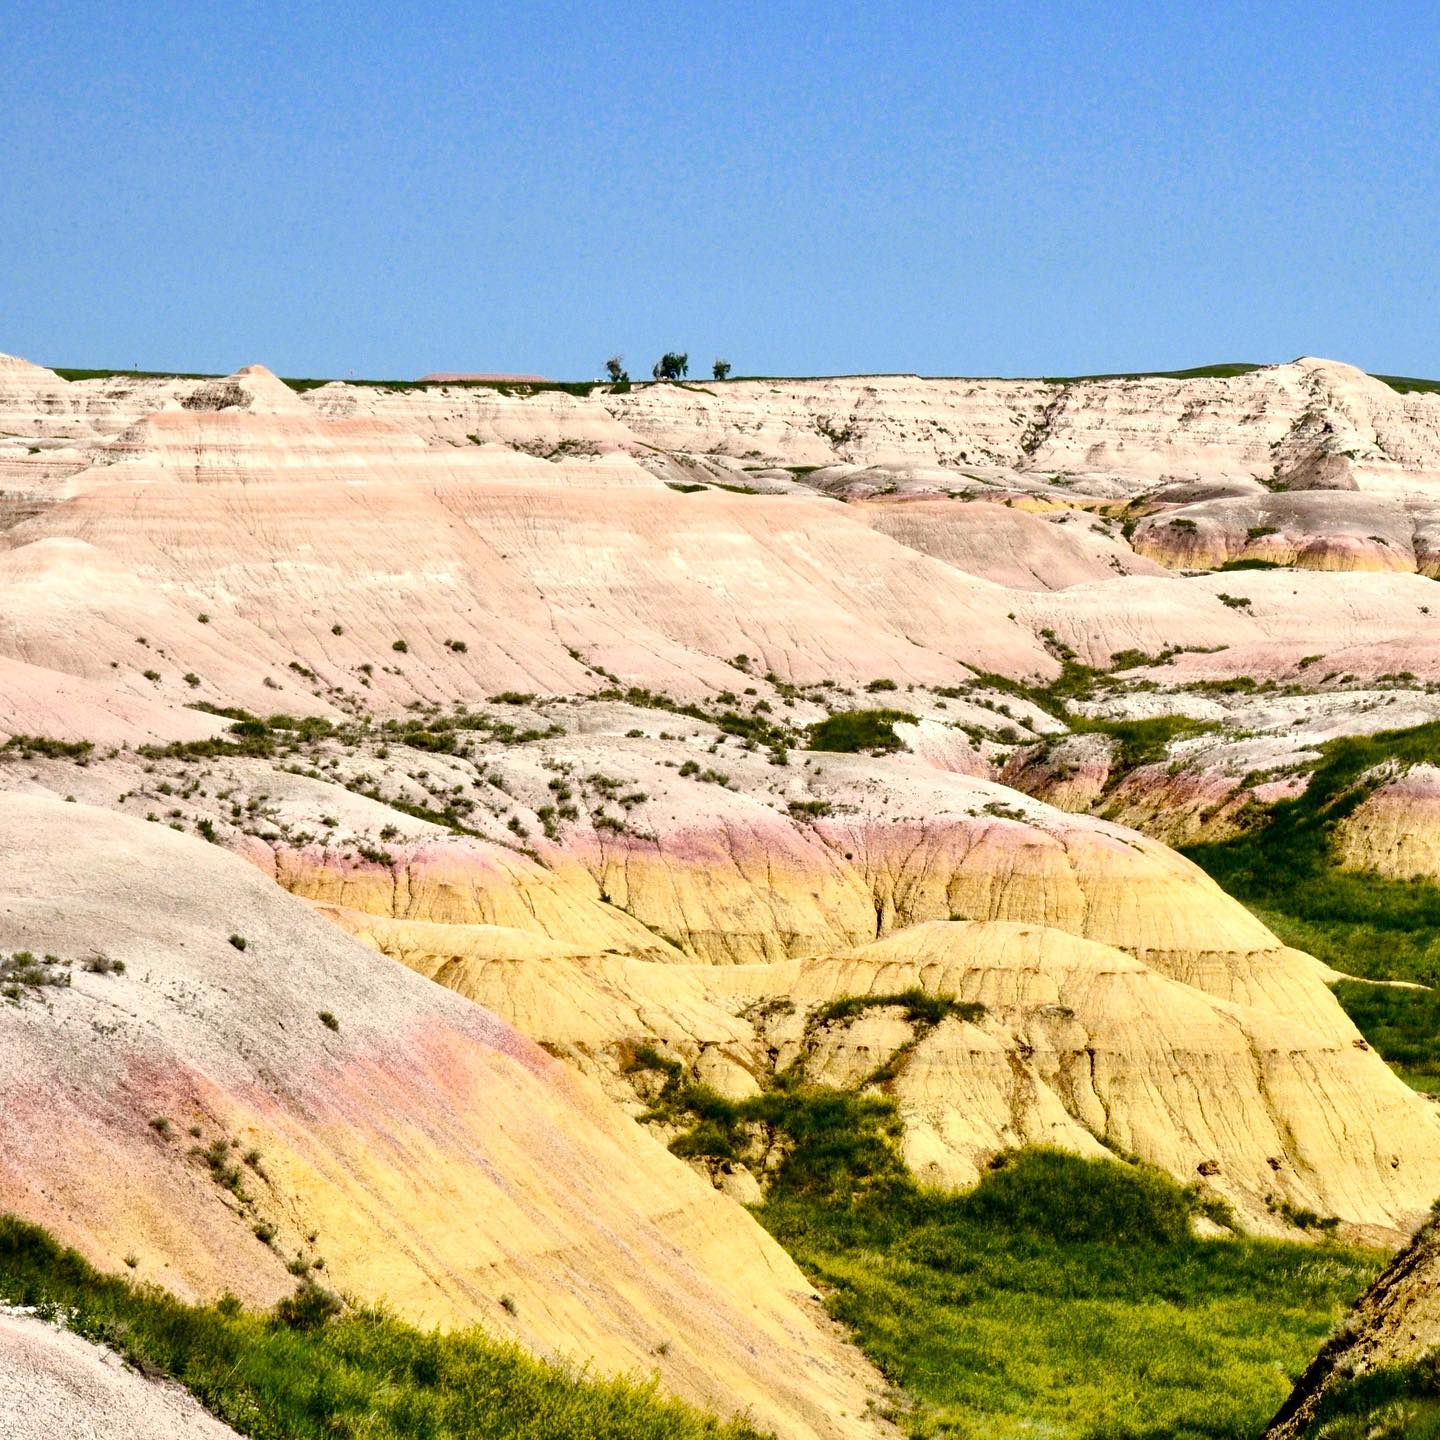 Badlands NP, South Dakota Seemingly out of nowhere colorful curved formations reveal as far as you can see. We were really impressed by the beauty of the park. #usa #us #unitedstates #unitedstatesofamerica #roadtrip #roadtripusa #travelusa #traveltheus #travelphotography #travelgram #travellover #traveller #reisefotografie #reiselust #usareise #southdakota #badlands #badlandsnationalpark #nationalparkusa #nature #naturephotography #nature_perfection #socolourful #uniqueplaces #travelblog #travelblogger #reiseblogusa #reiseblogger #picofday #naturepics